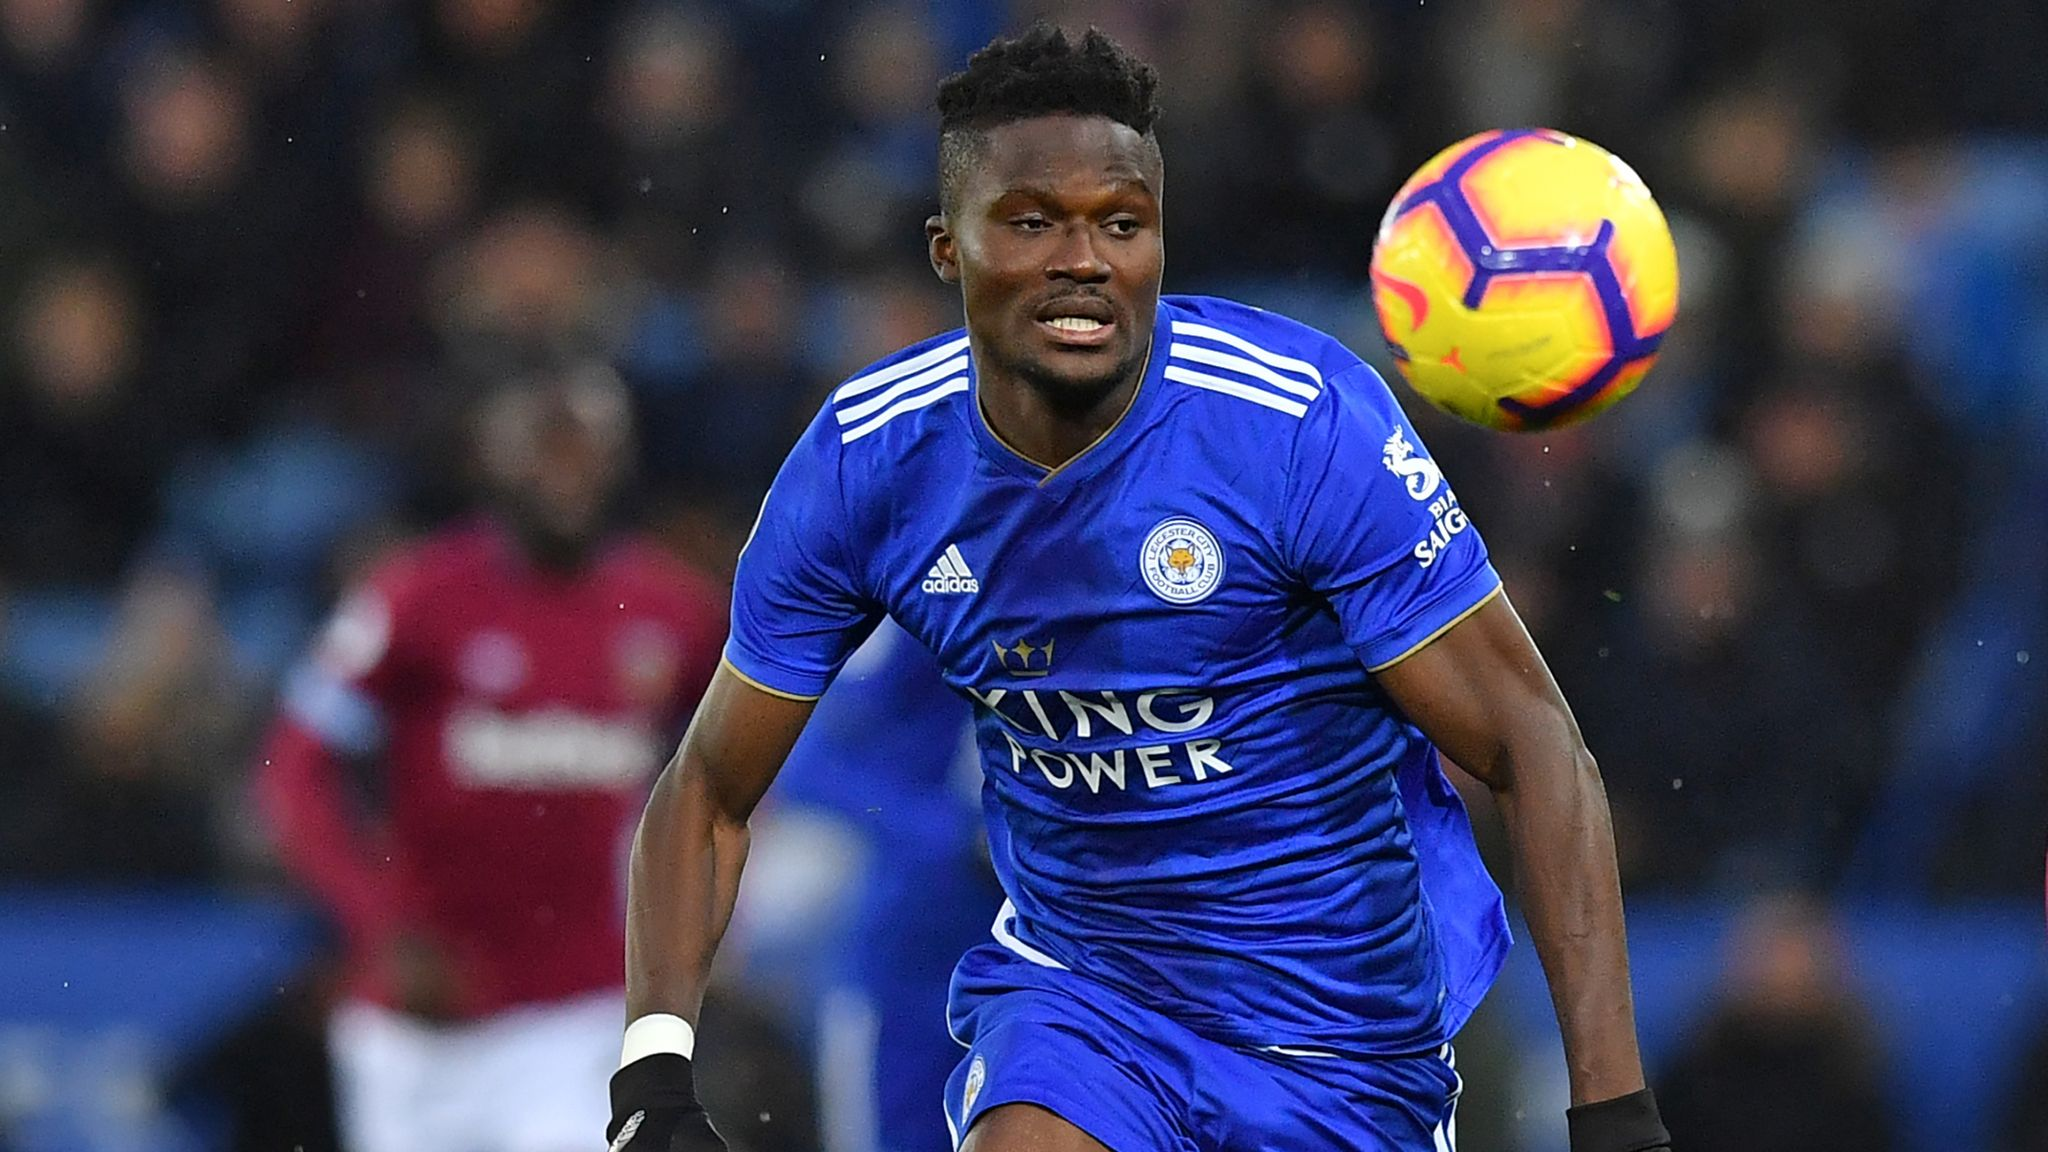 Daniel Amartey signs new contract at Leicester | Football News | Sky Sports